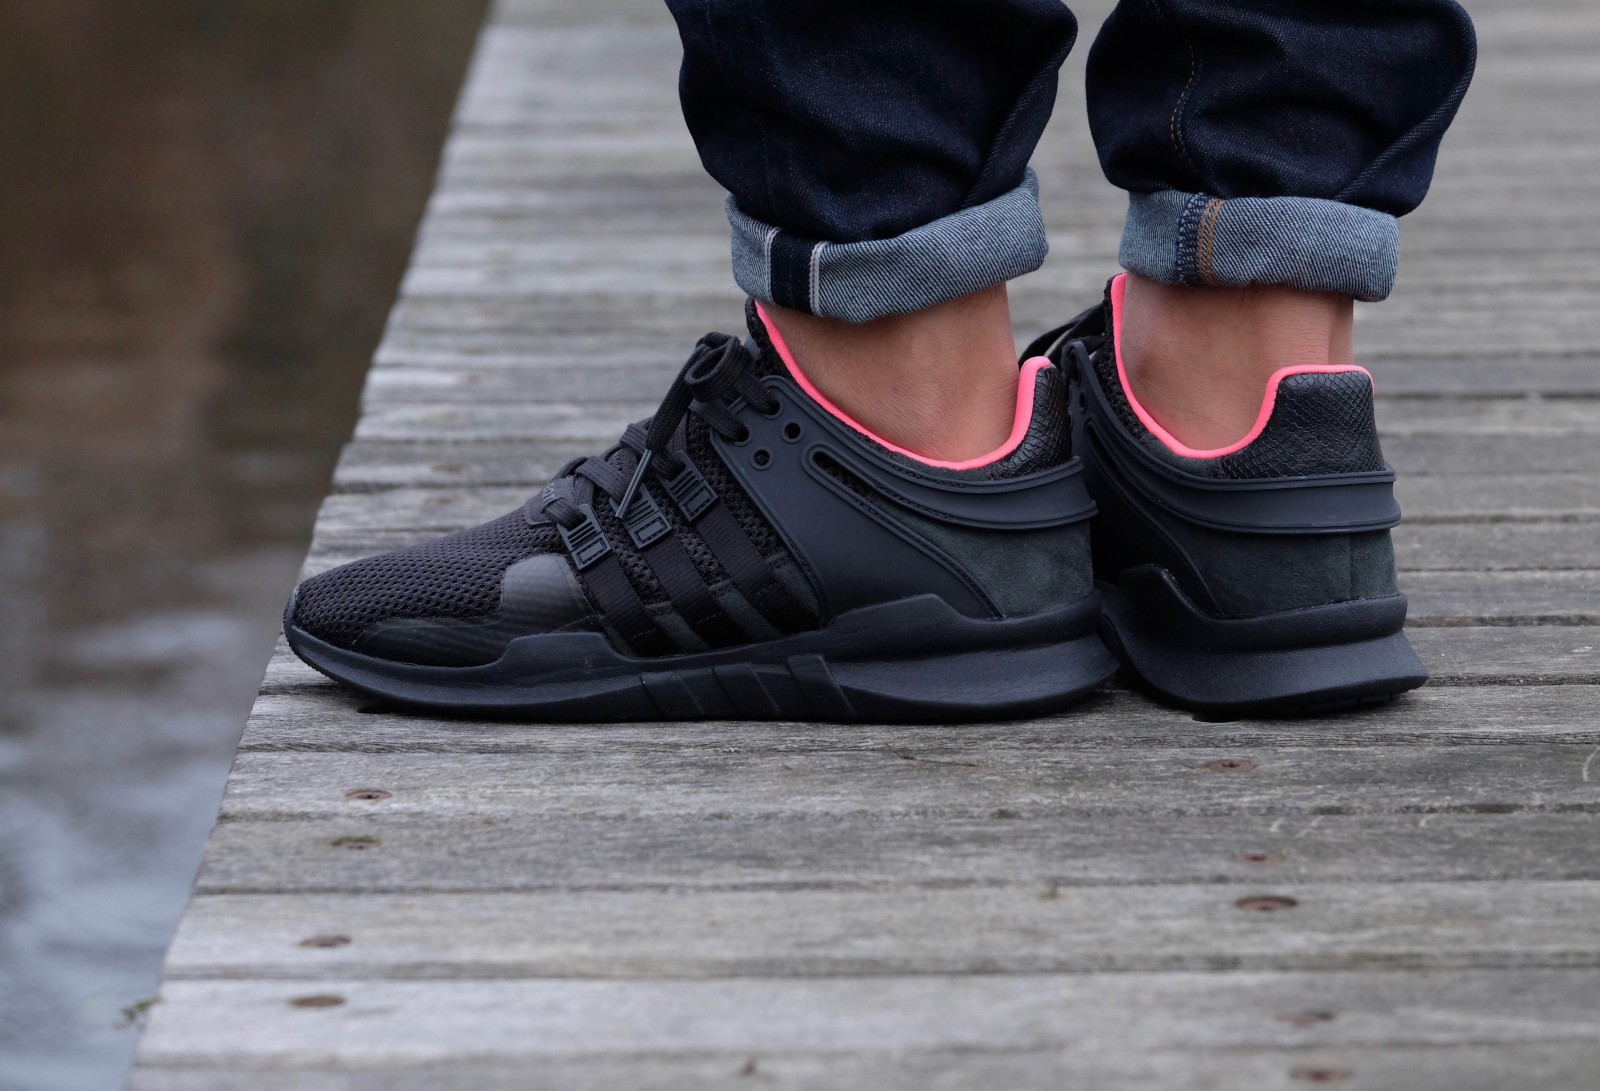 Adidas EQT Support 93/17 black BZ0584 Sneaker Junkies